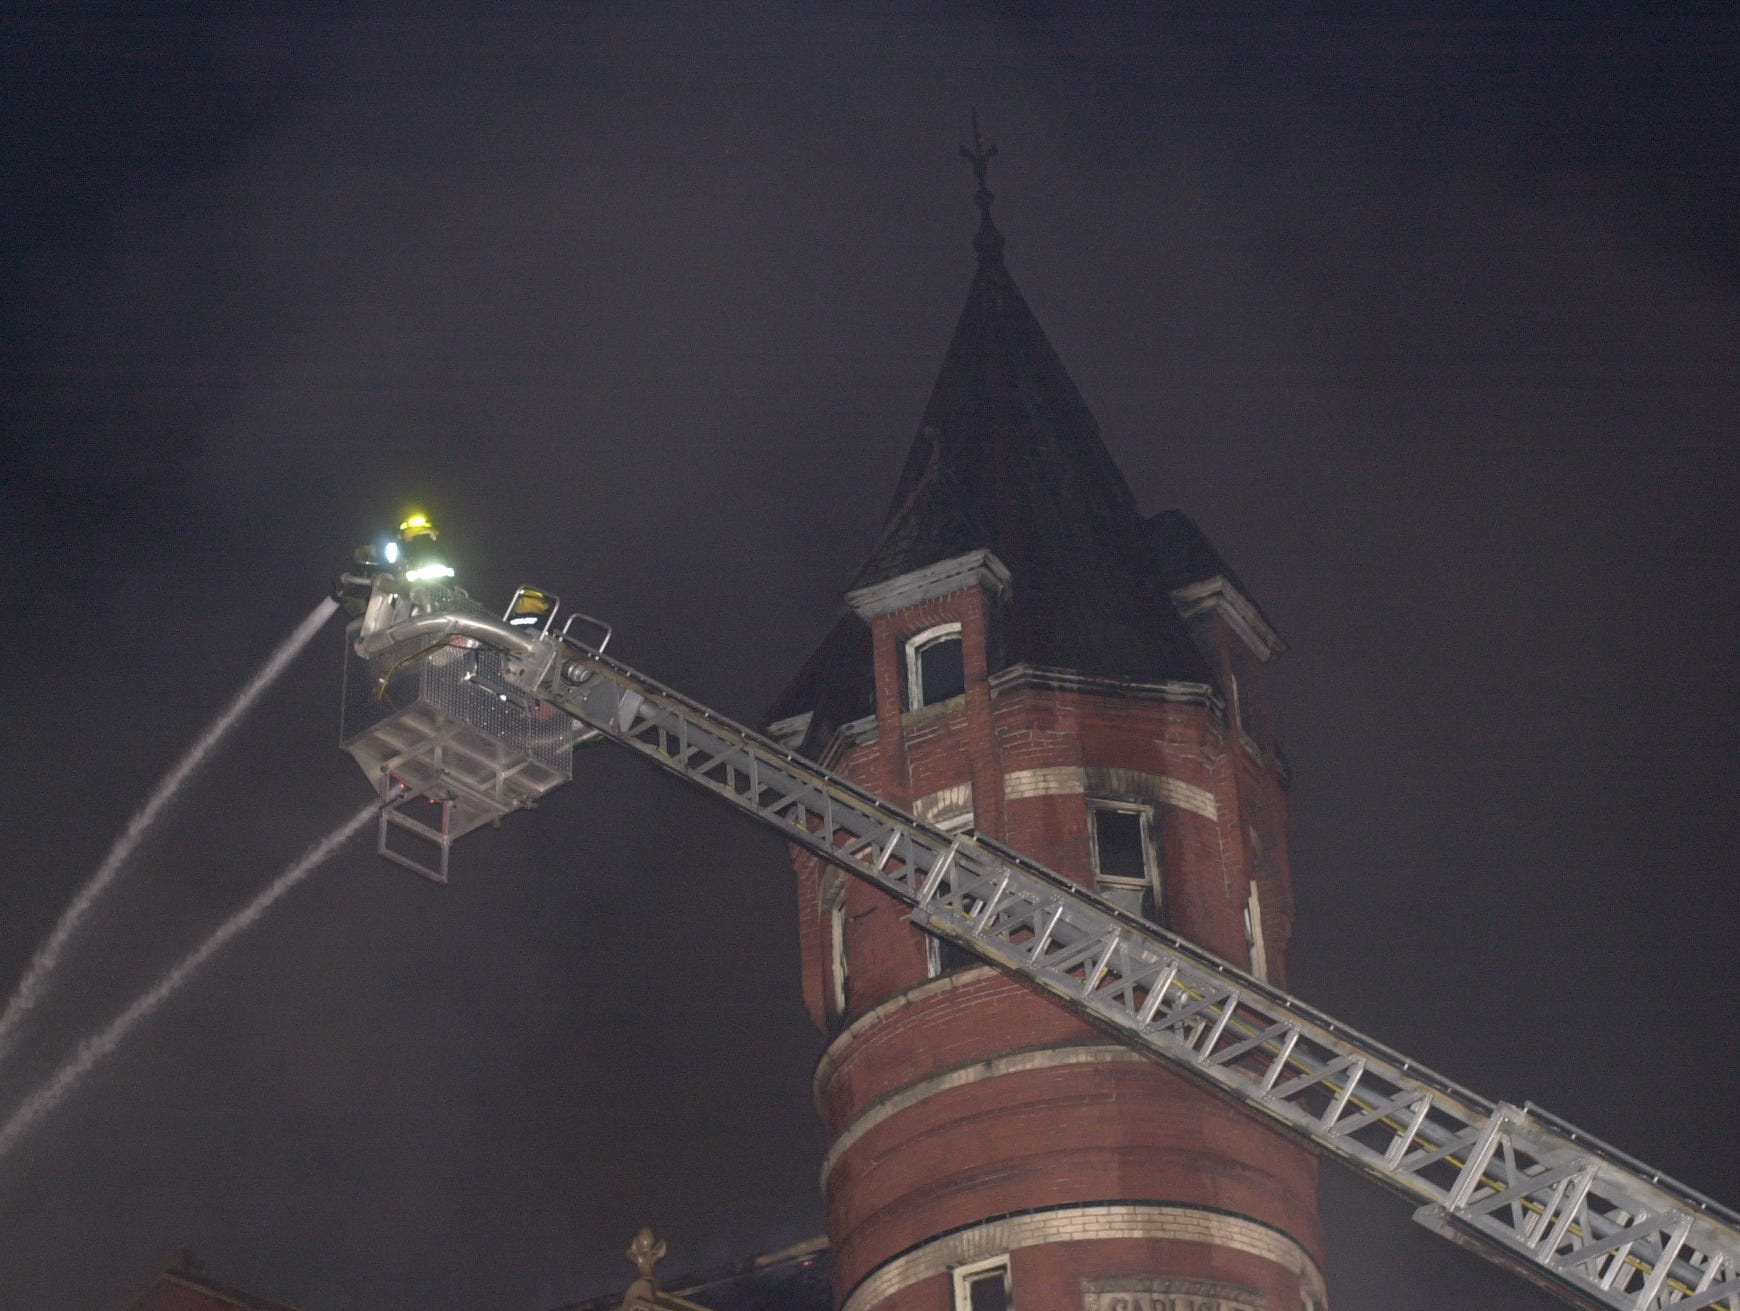 Chillicothe Fire Department and other departments battle the Carlisle building blaze on April 25, 2003.